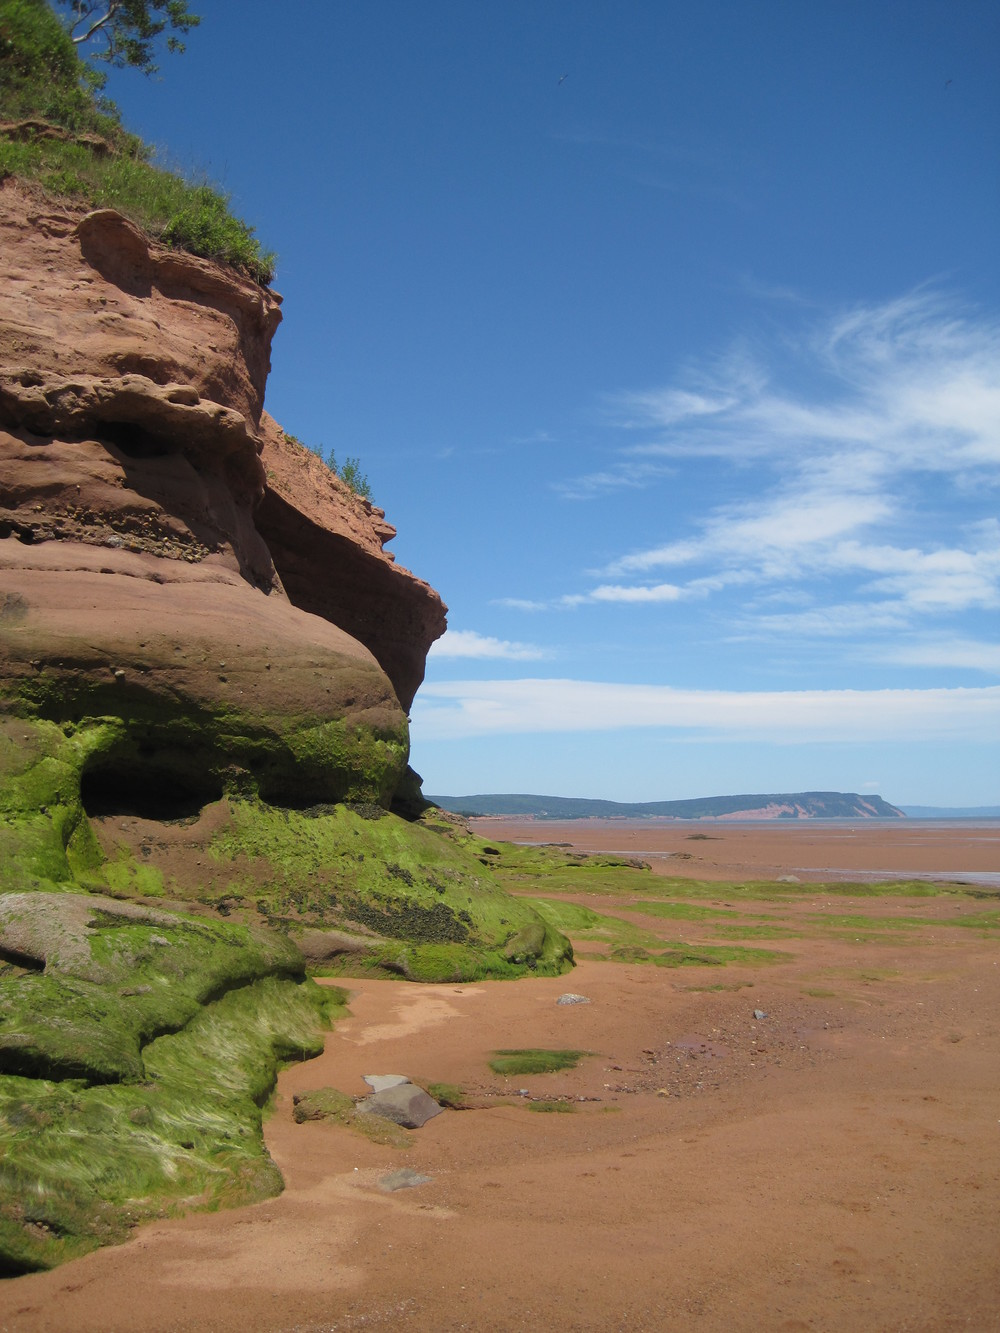 Kingsport Beach is my favourite beach in Nova Scotia for its red clay sand.